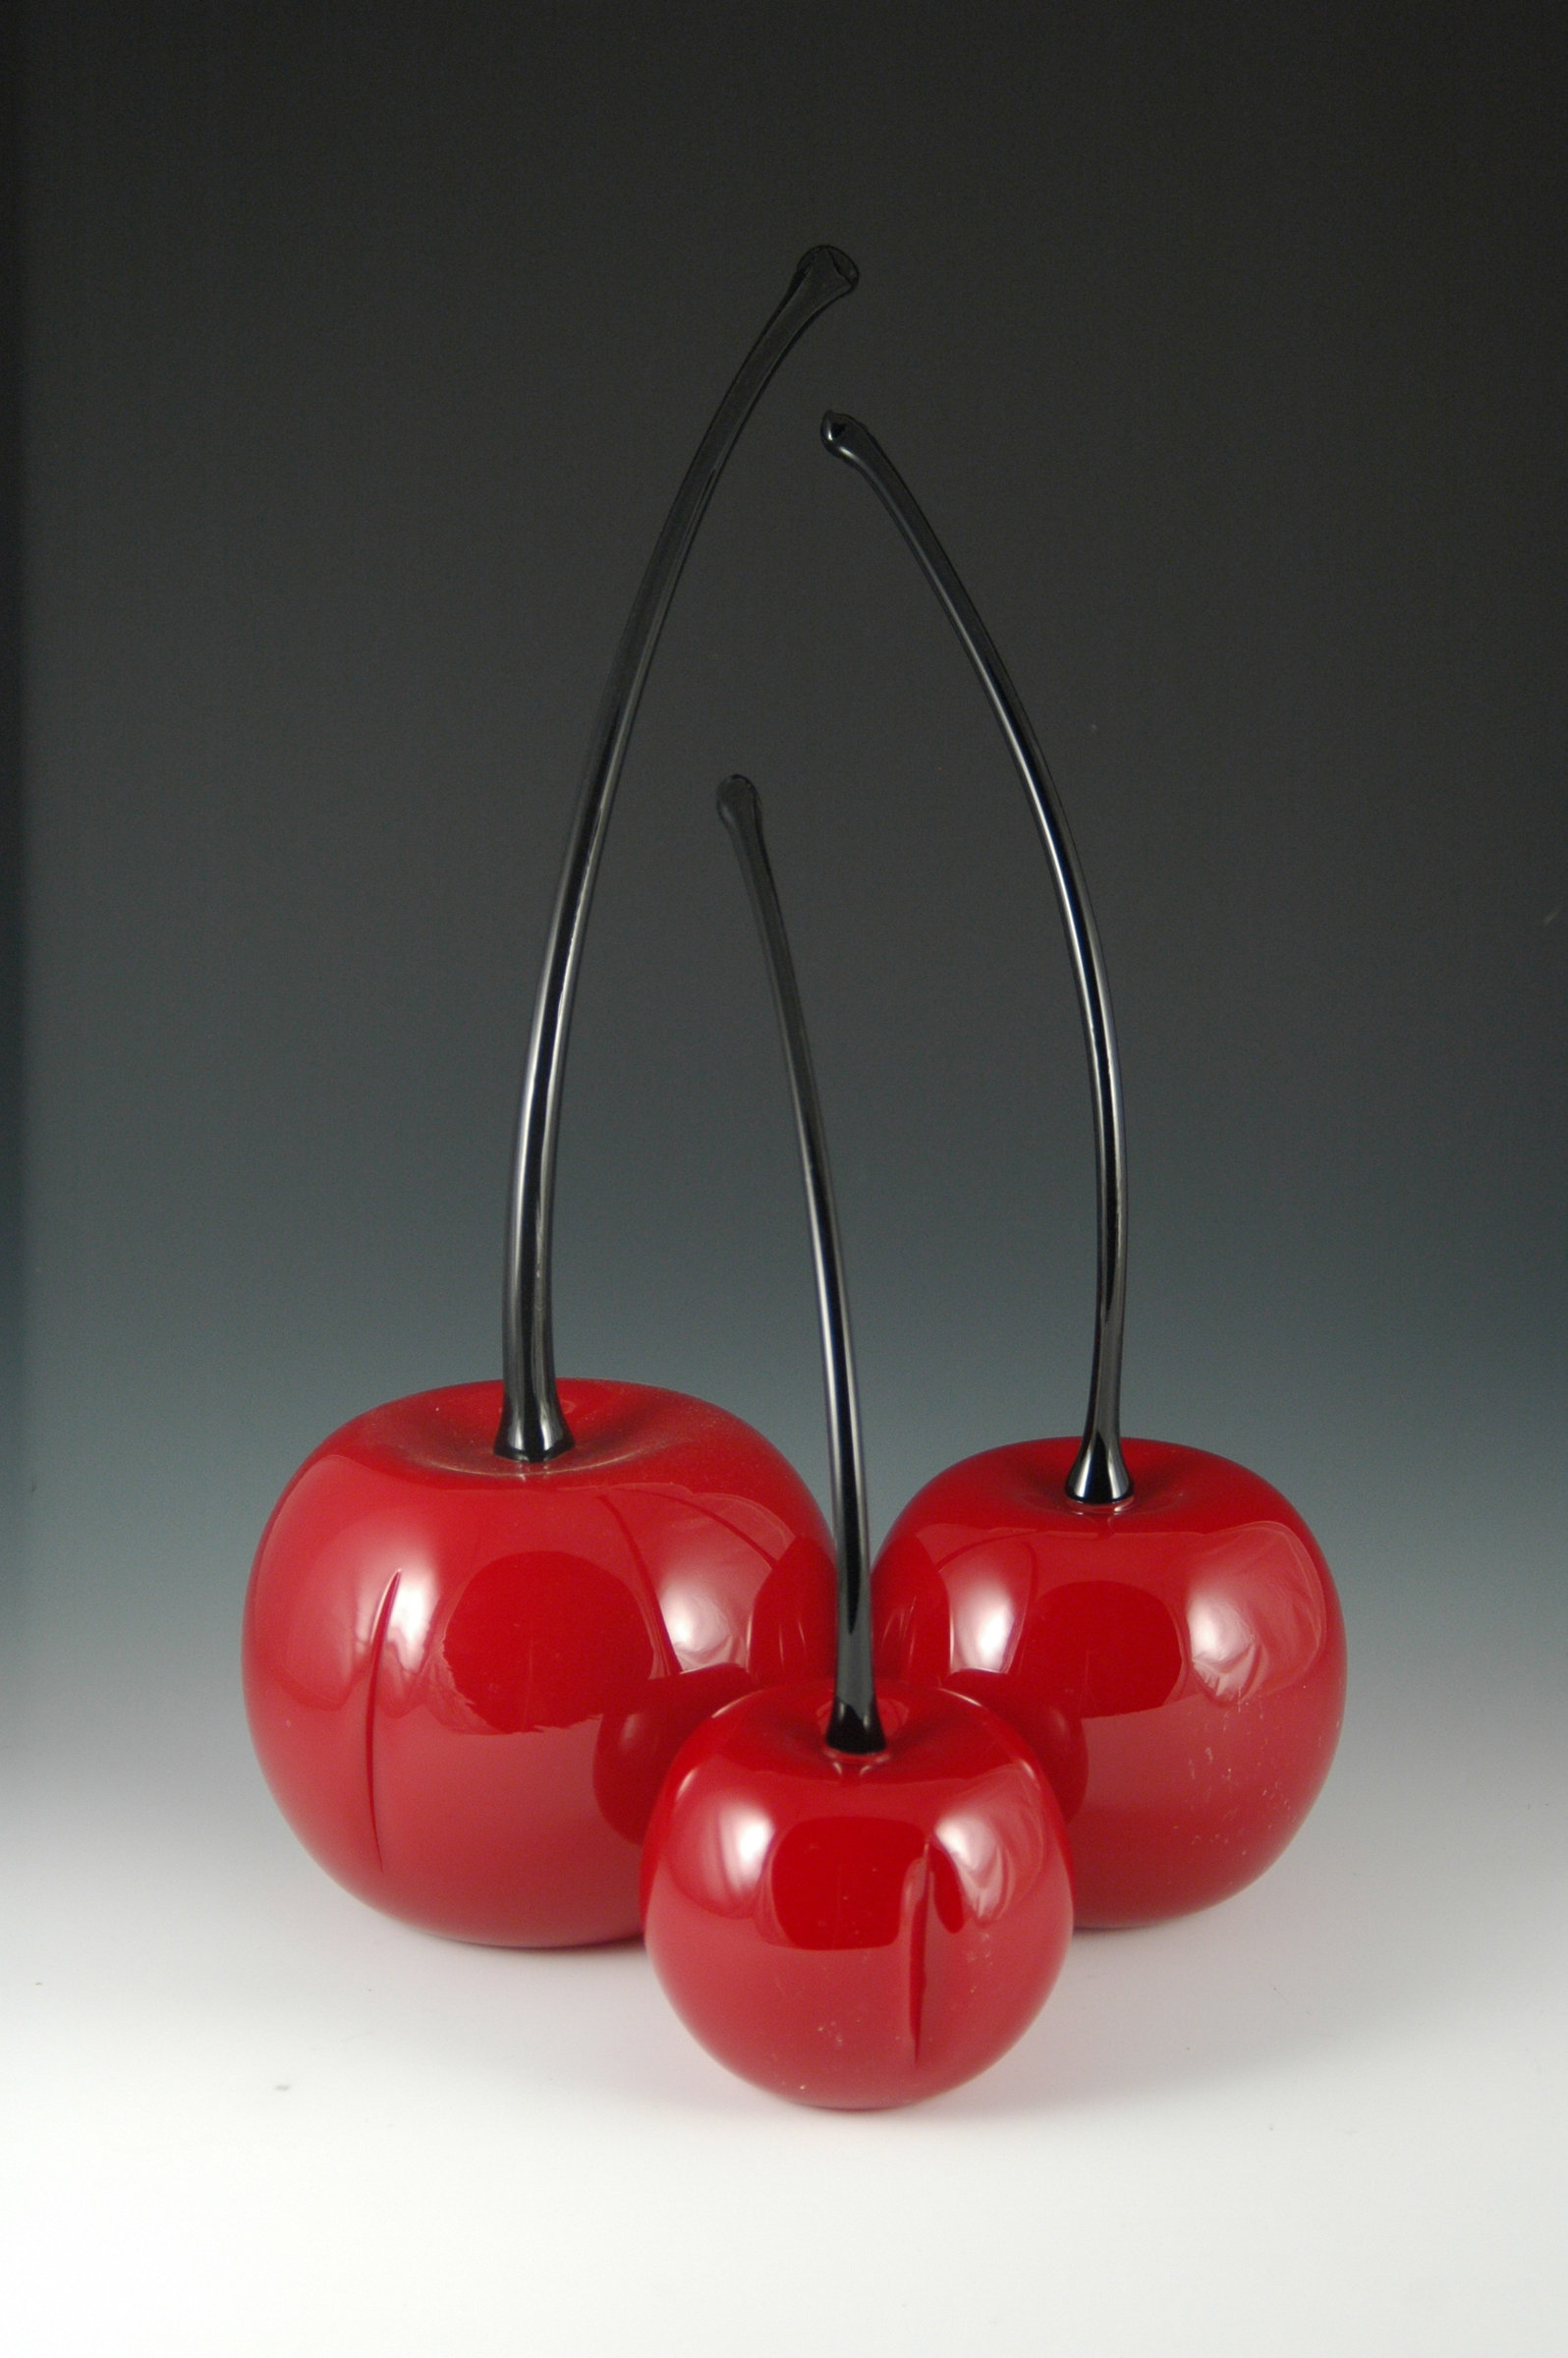 Images Of Red Cherries